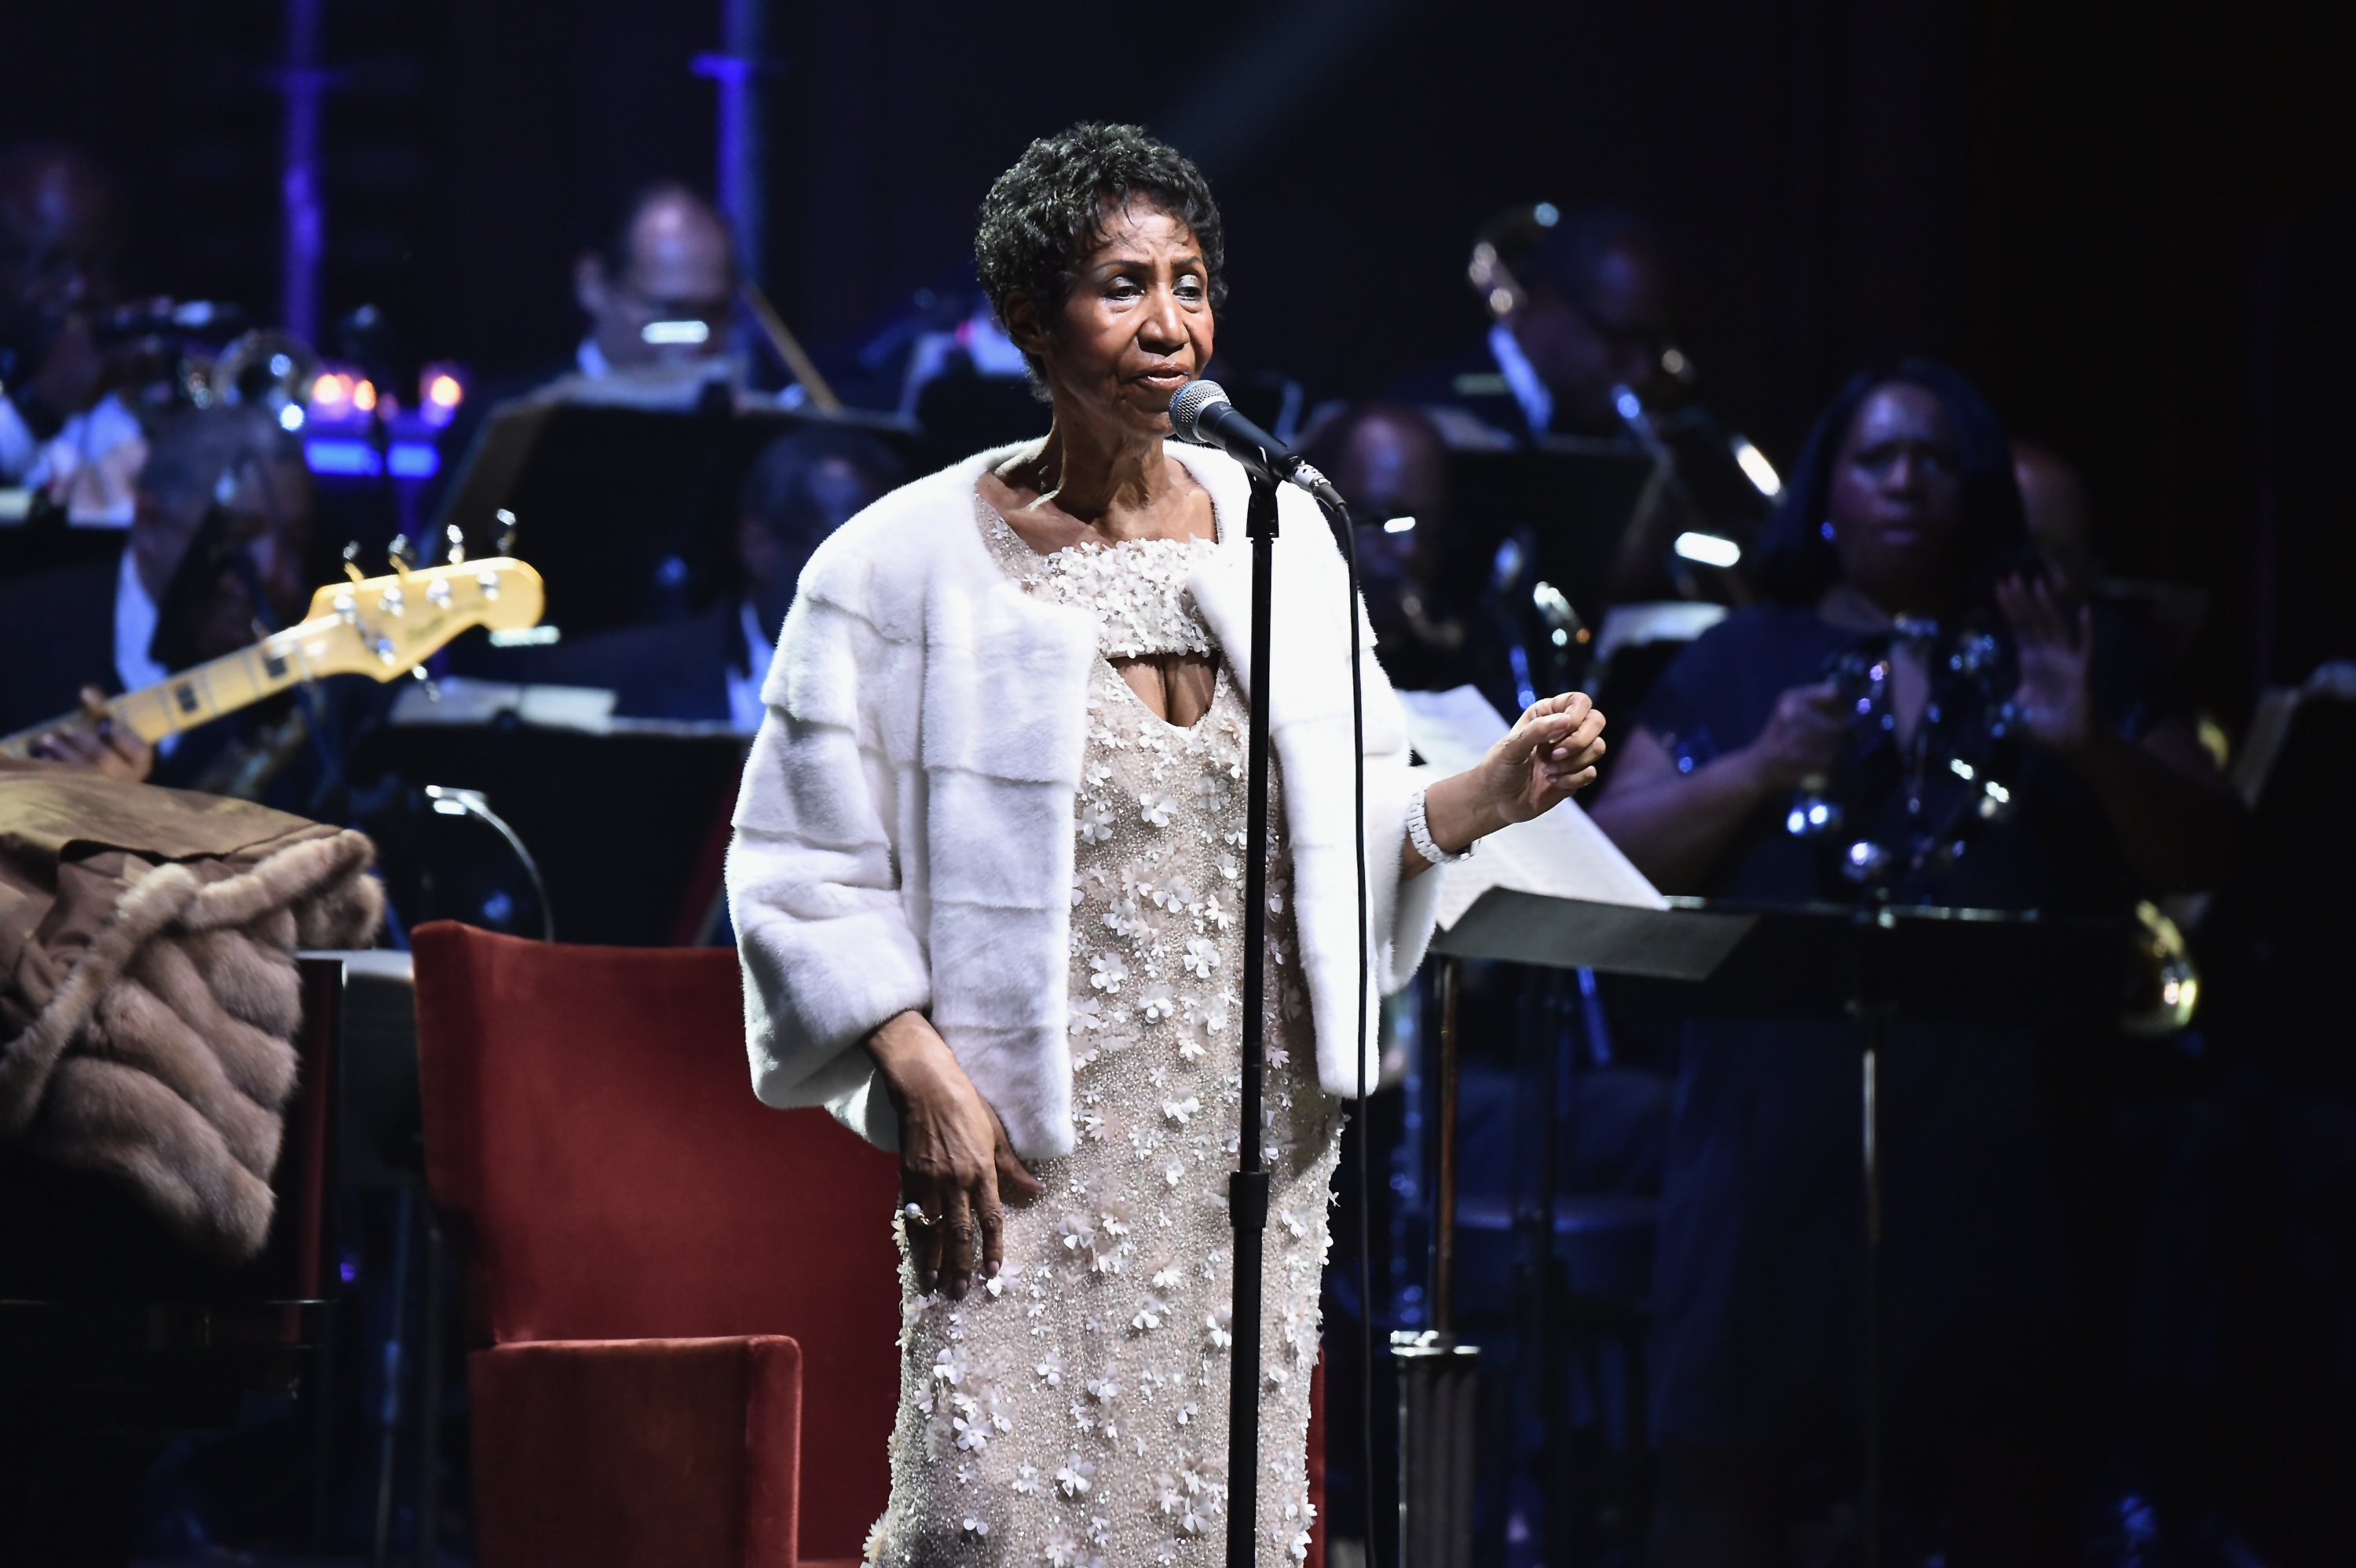 Aretha Franklin performing onstage at the Elton John AIDS Foundation on its  25th Year on November 7, 2017 at the Cathedial of St. John the Divine.   Source: Getty Images